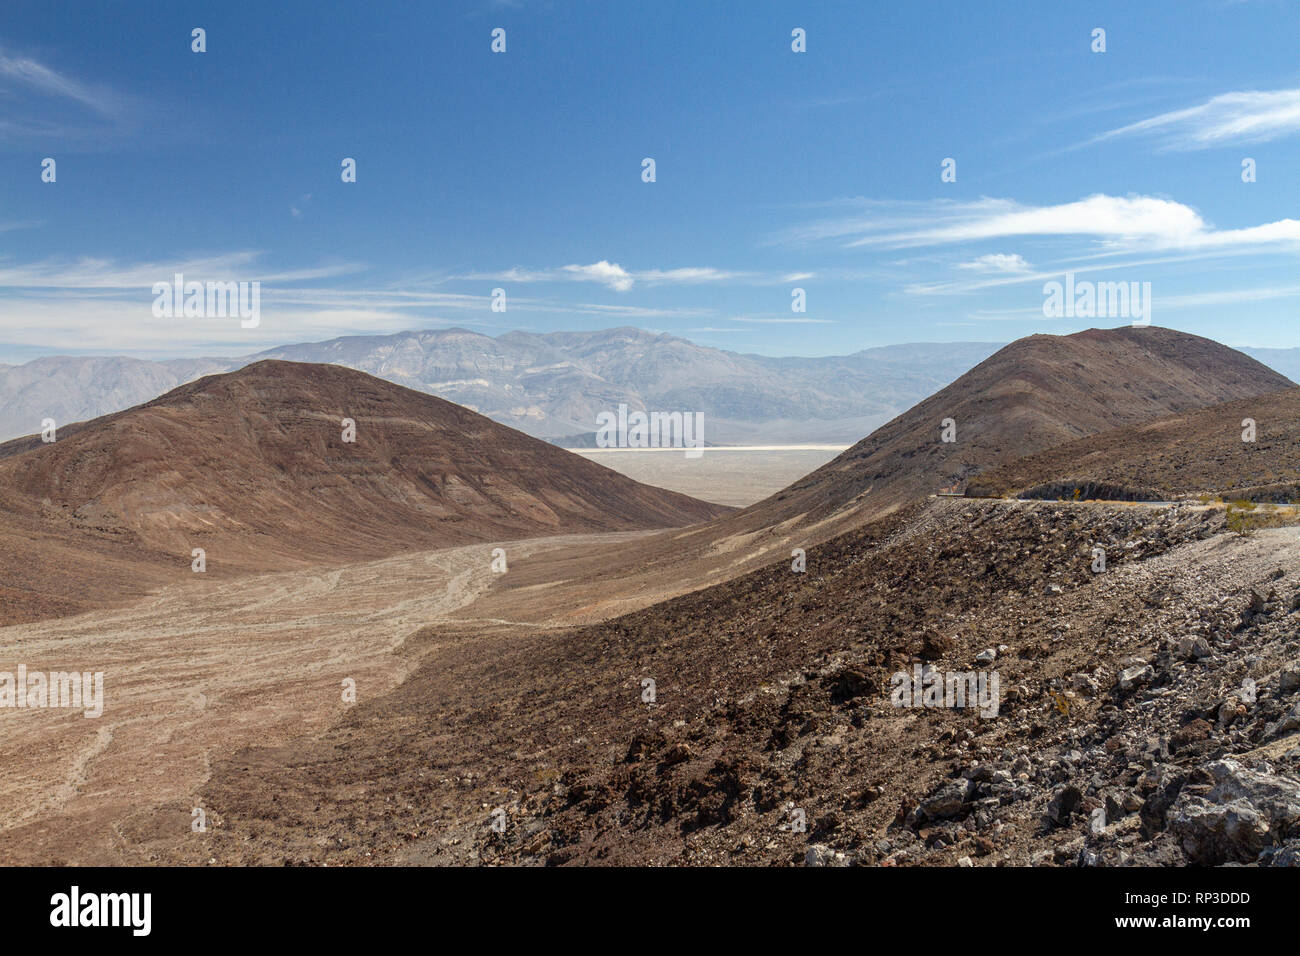 View from Father Crowley Overlook looking west along Rainbow Canyon (the 'Star Wars Canyon') towards Death Valley, Death Valley National Park, CA, USA - Stock Image